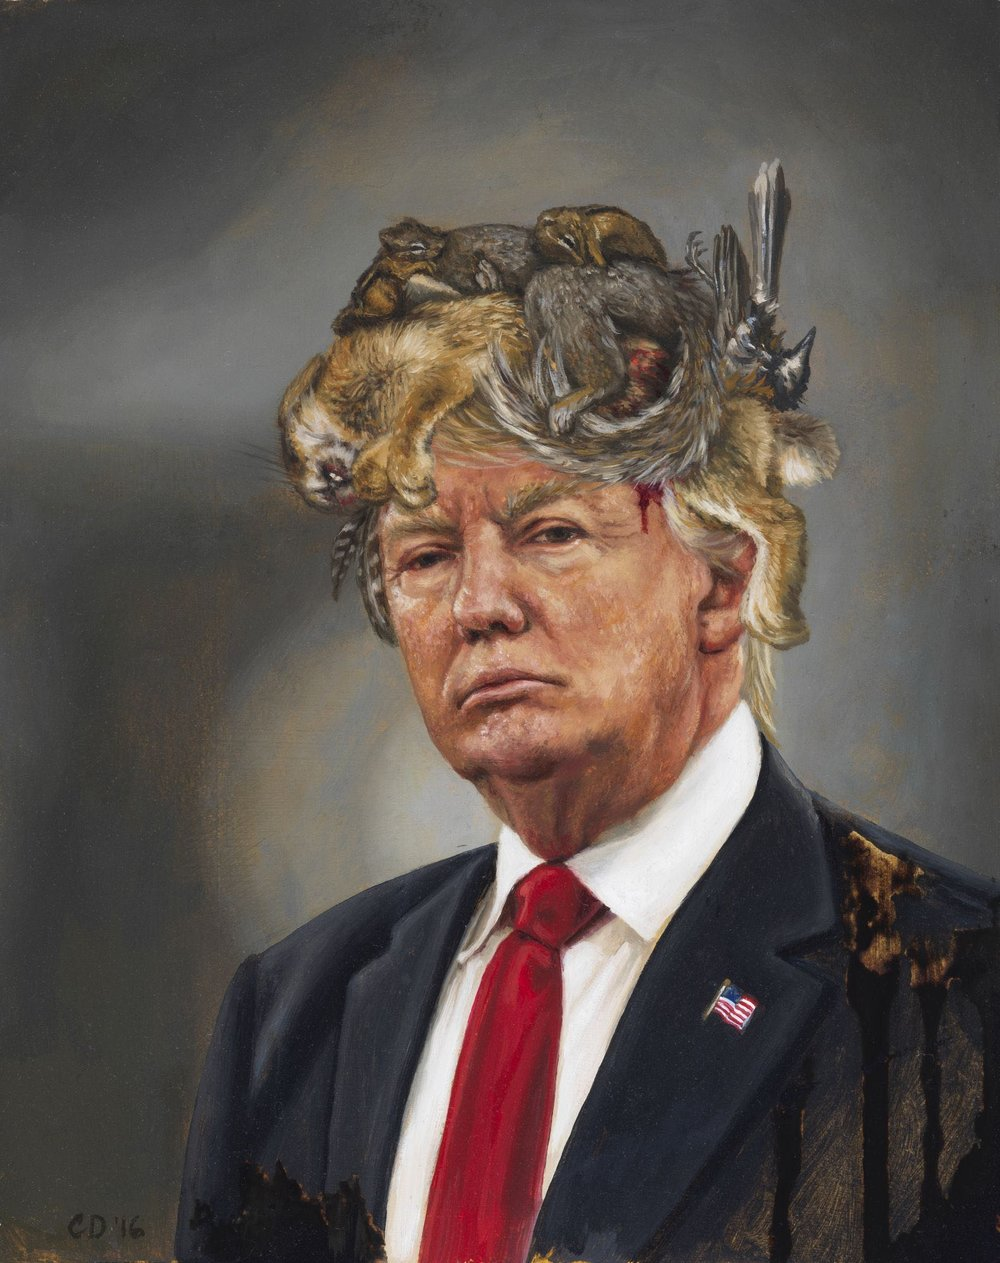 **CARA DEANGELIS- Donald Trump with a Crown of Roadkill - THE UNTITLED SPACE - UPRISE ANGRY WOMEN EXHIBIT.jpg